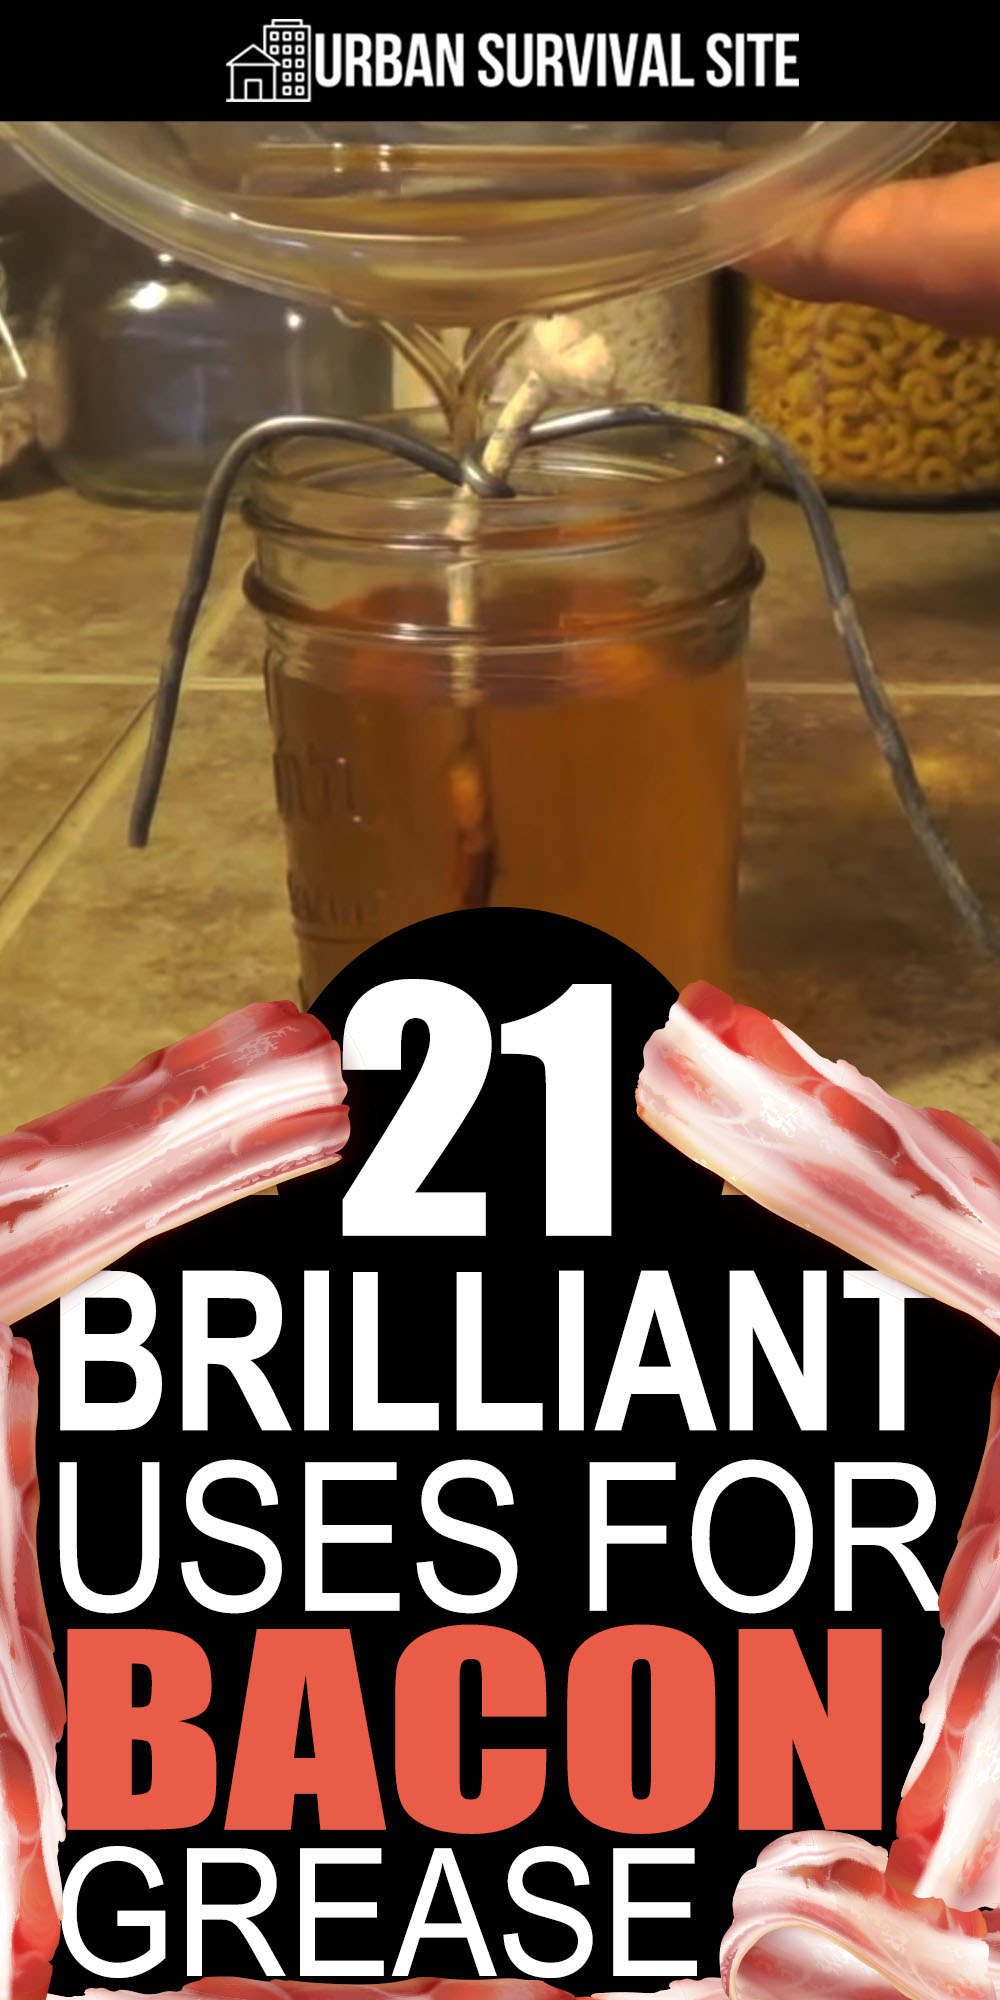 21 Brilliant Uses for Bacon Grease